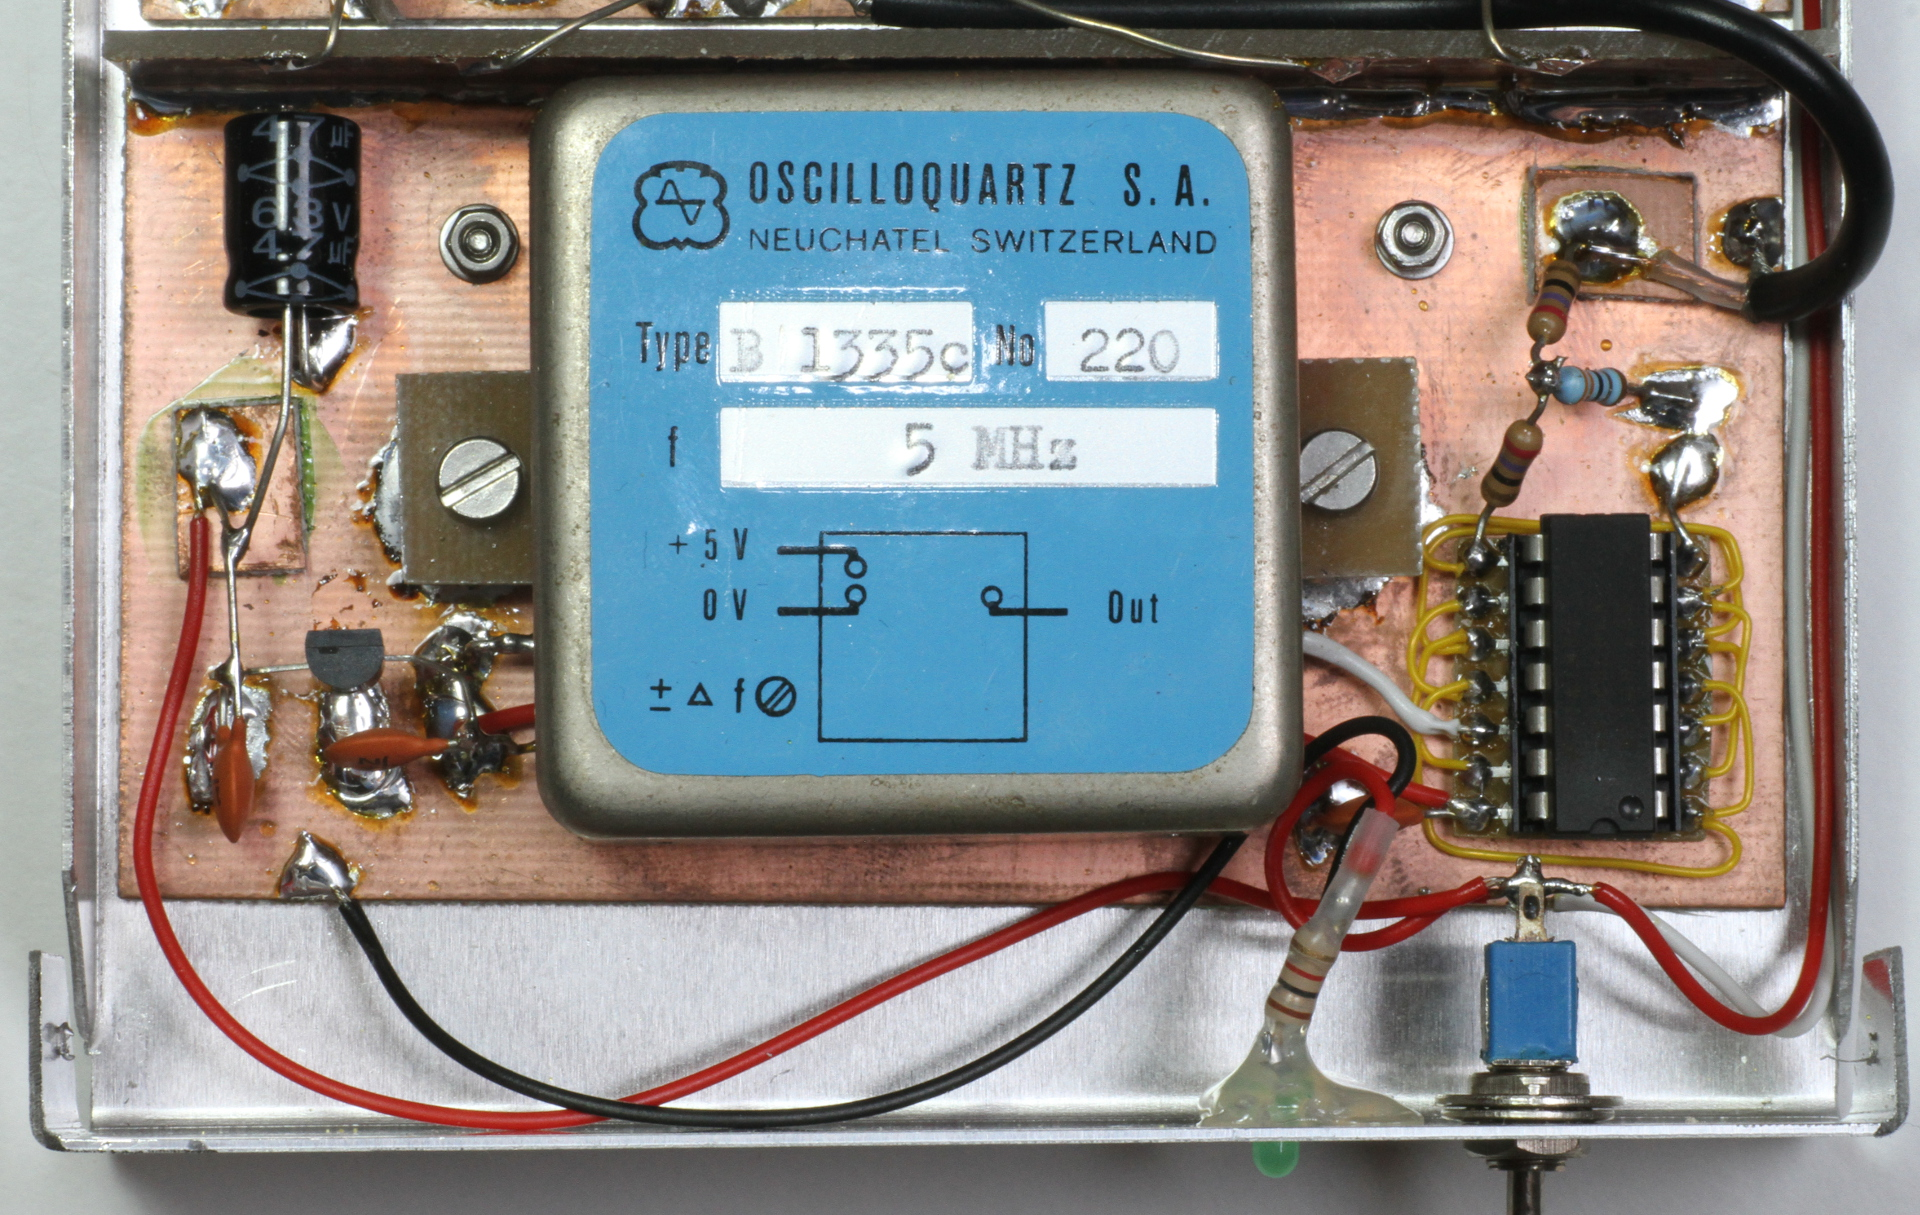 An Up Converter For Receiving Long And Very Waves 5mhz Notch Filter Circuit Diagram Electronic Diagrams Picture Of The Tcxo Middle With Its 5 Vdc Power Supply Left